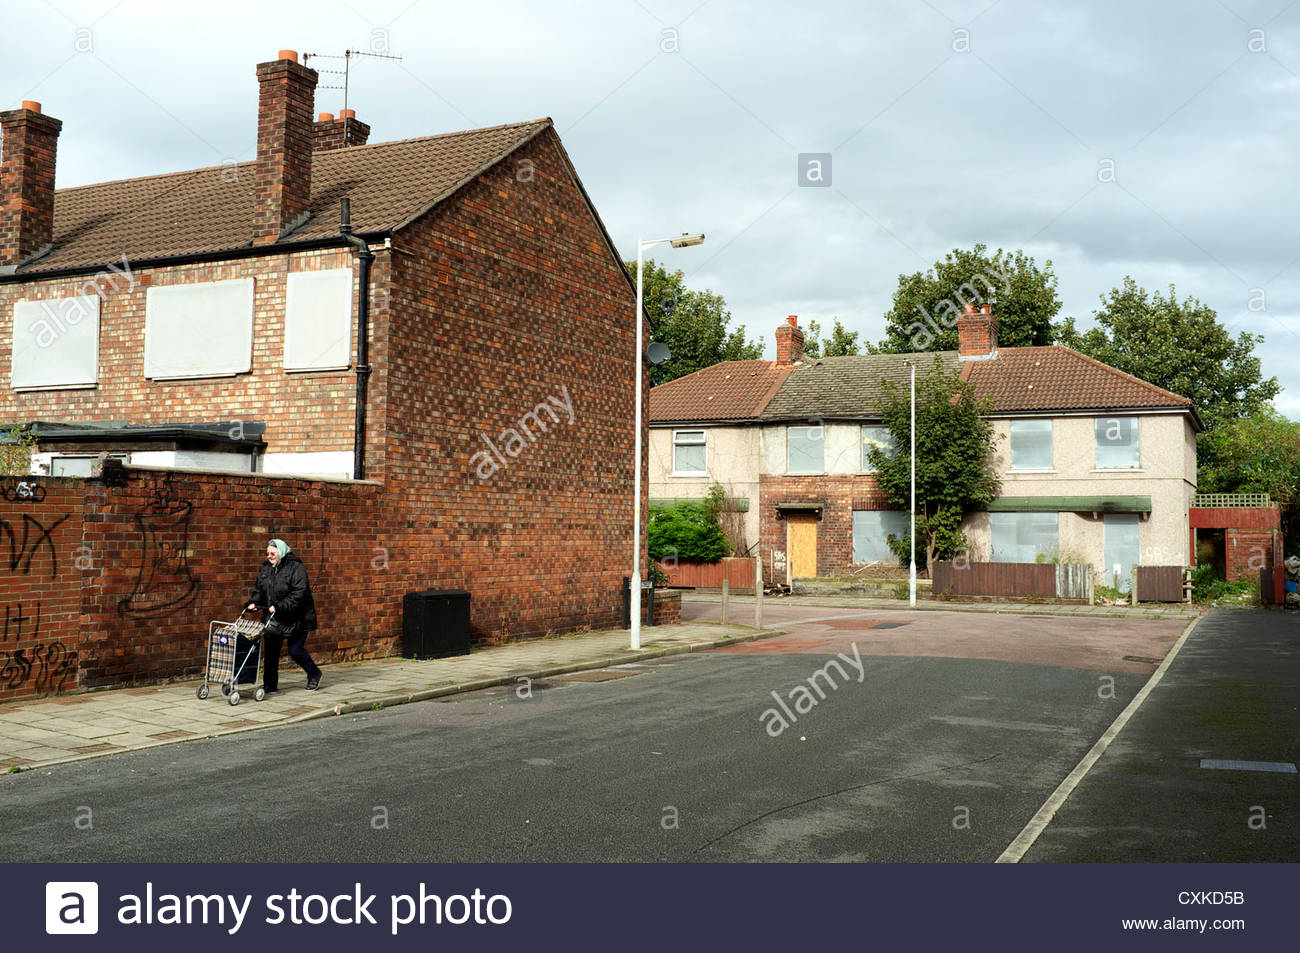 Derelict housing on the corner of Plumer St., and Rundle St., in Birkenhead, Wirral, Merseyside, UK. Stock Photo